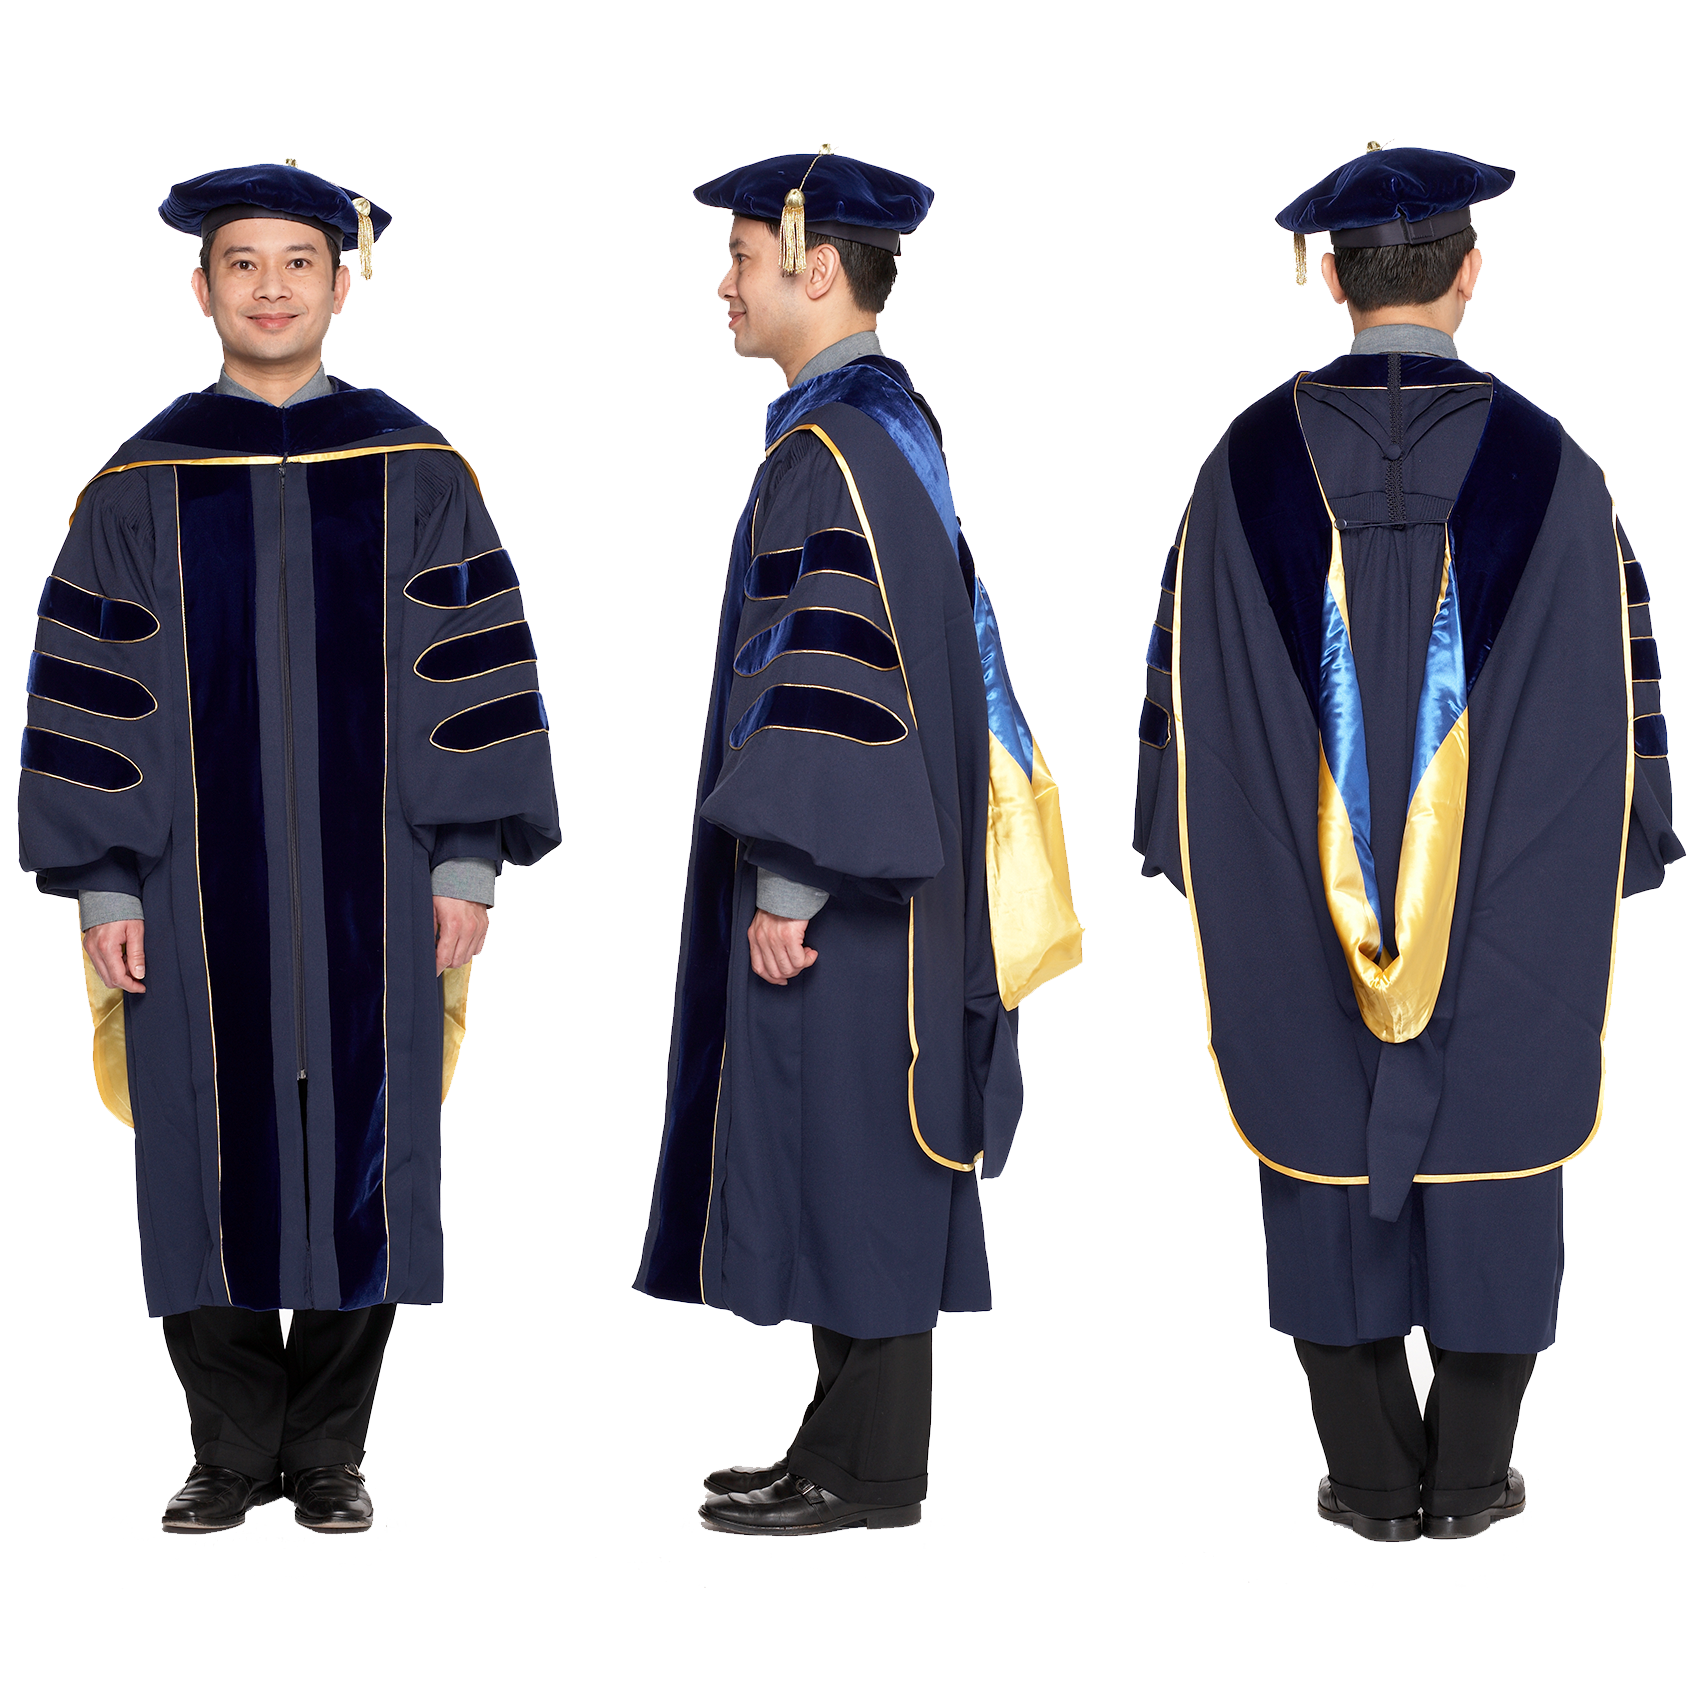 Complete Doctoral Regalia for University of California | University ...